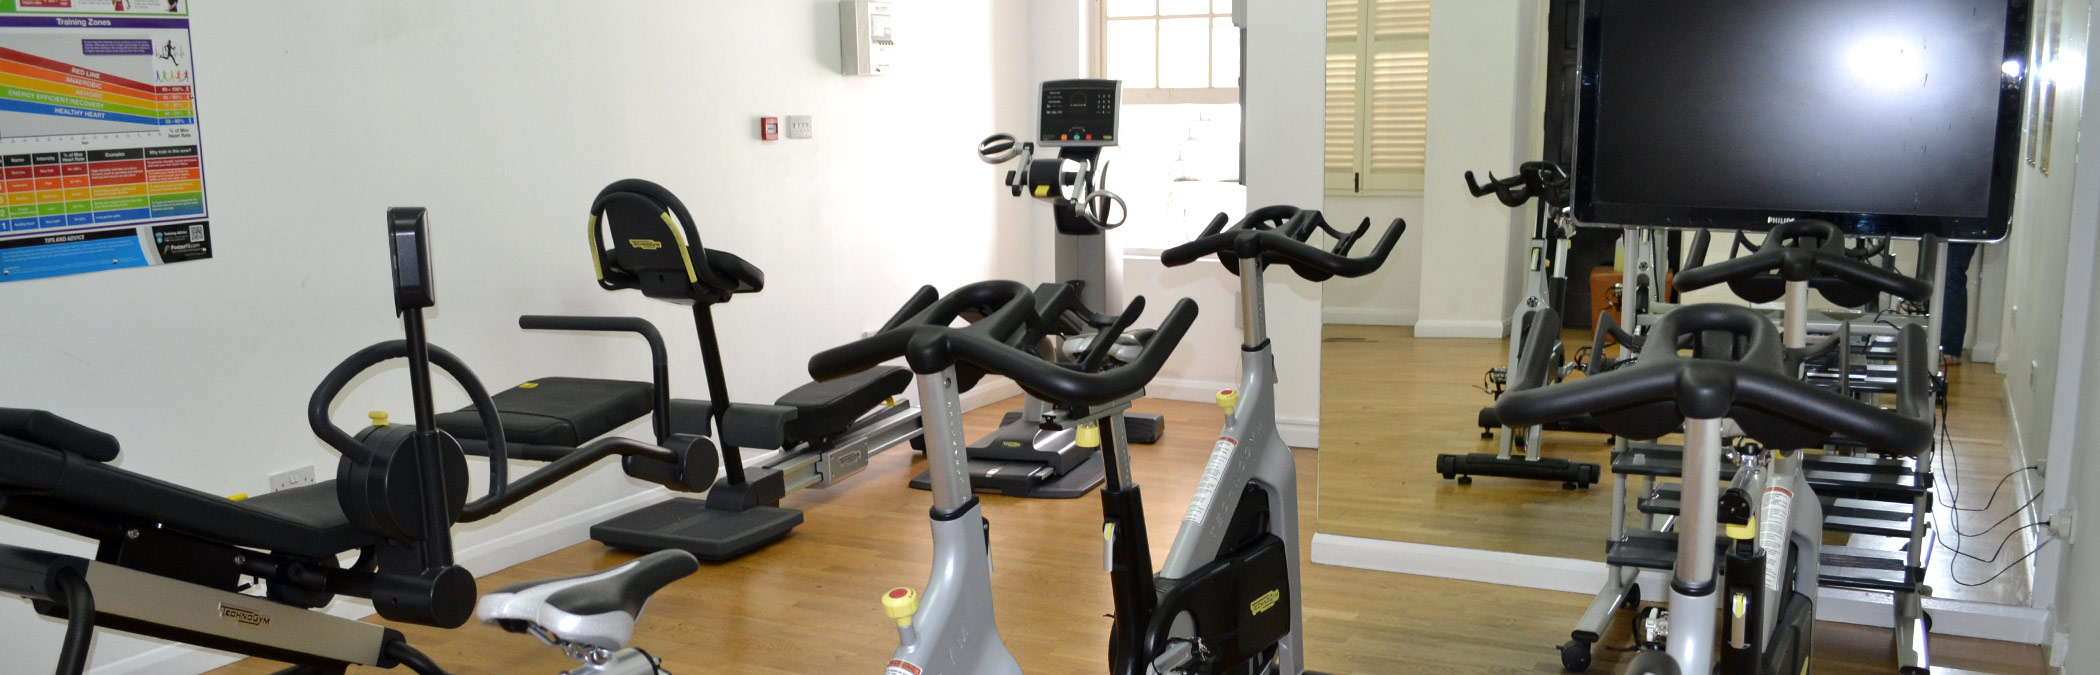 Fitness Centre at Kings Bastion